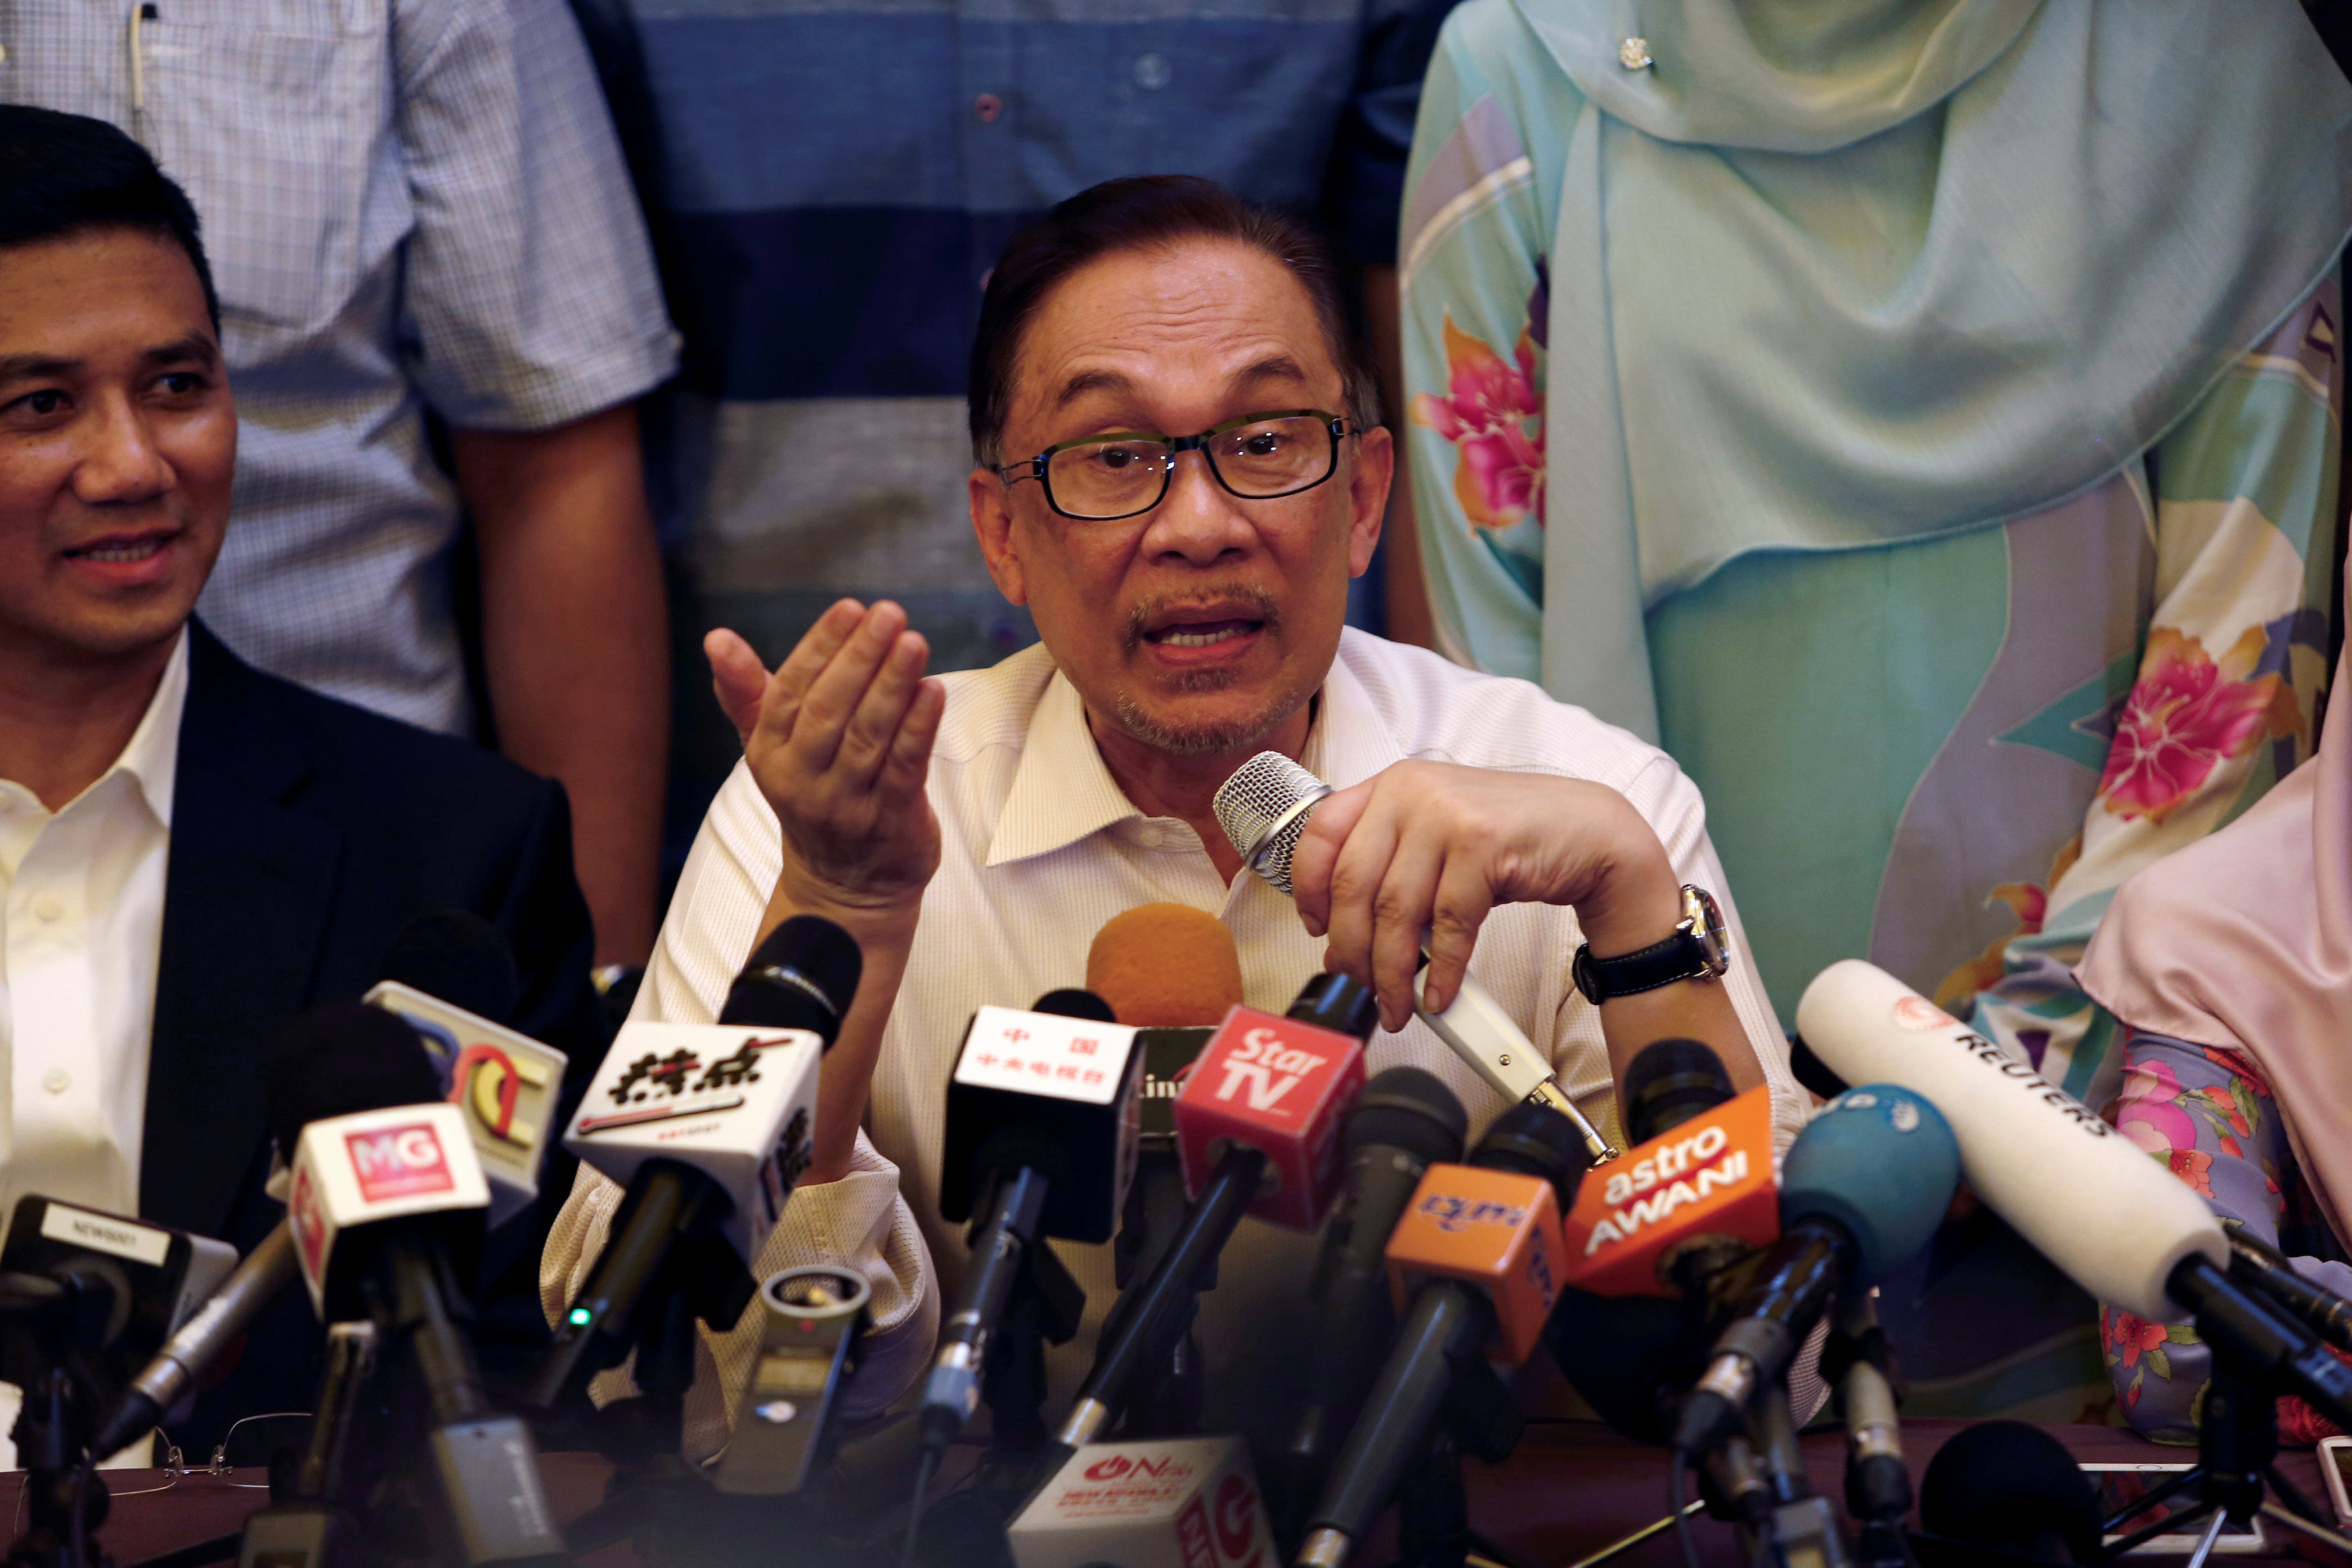 Anwar said if the prime minister was in agreement someone else could be appointed to oversee Islamic issues only.